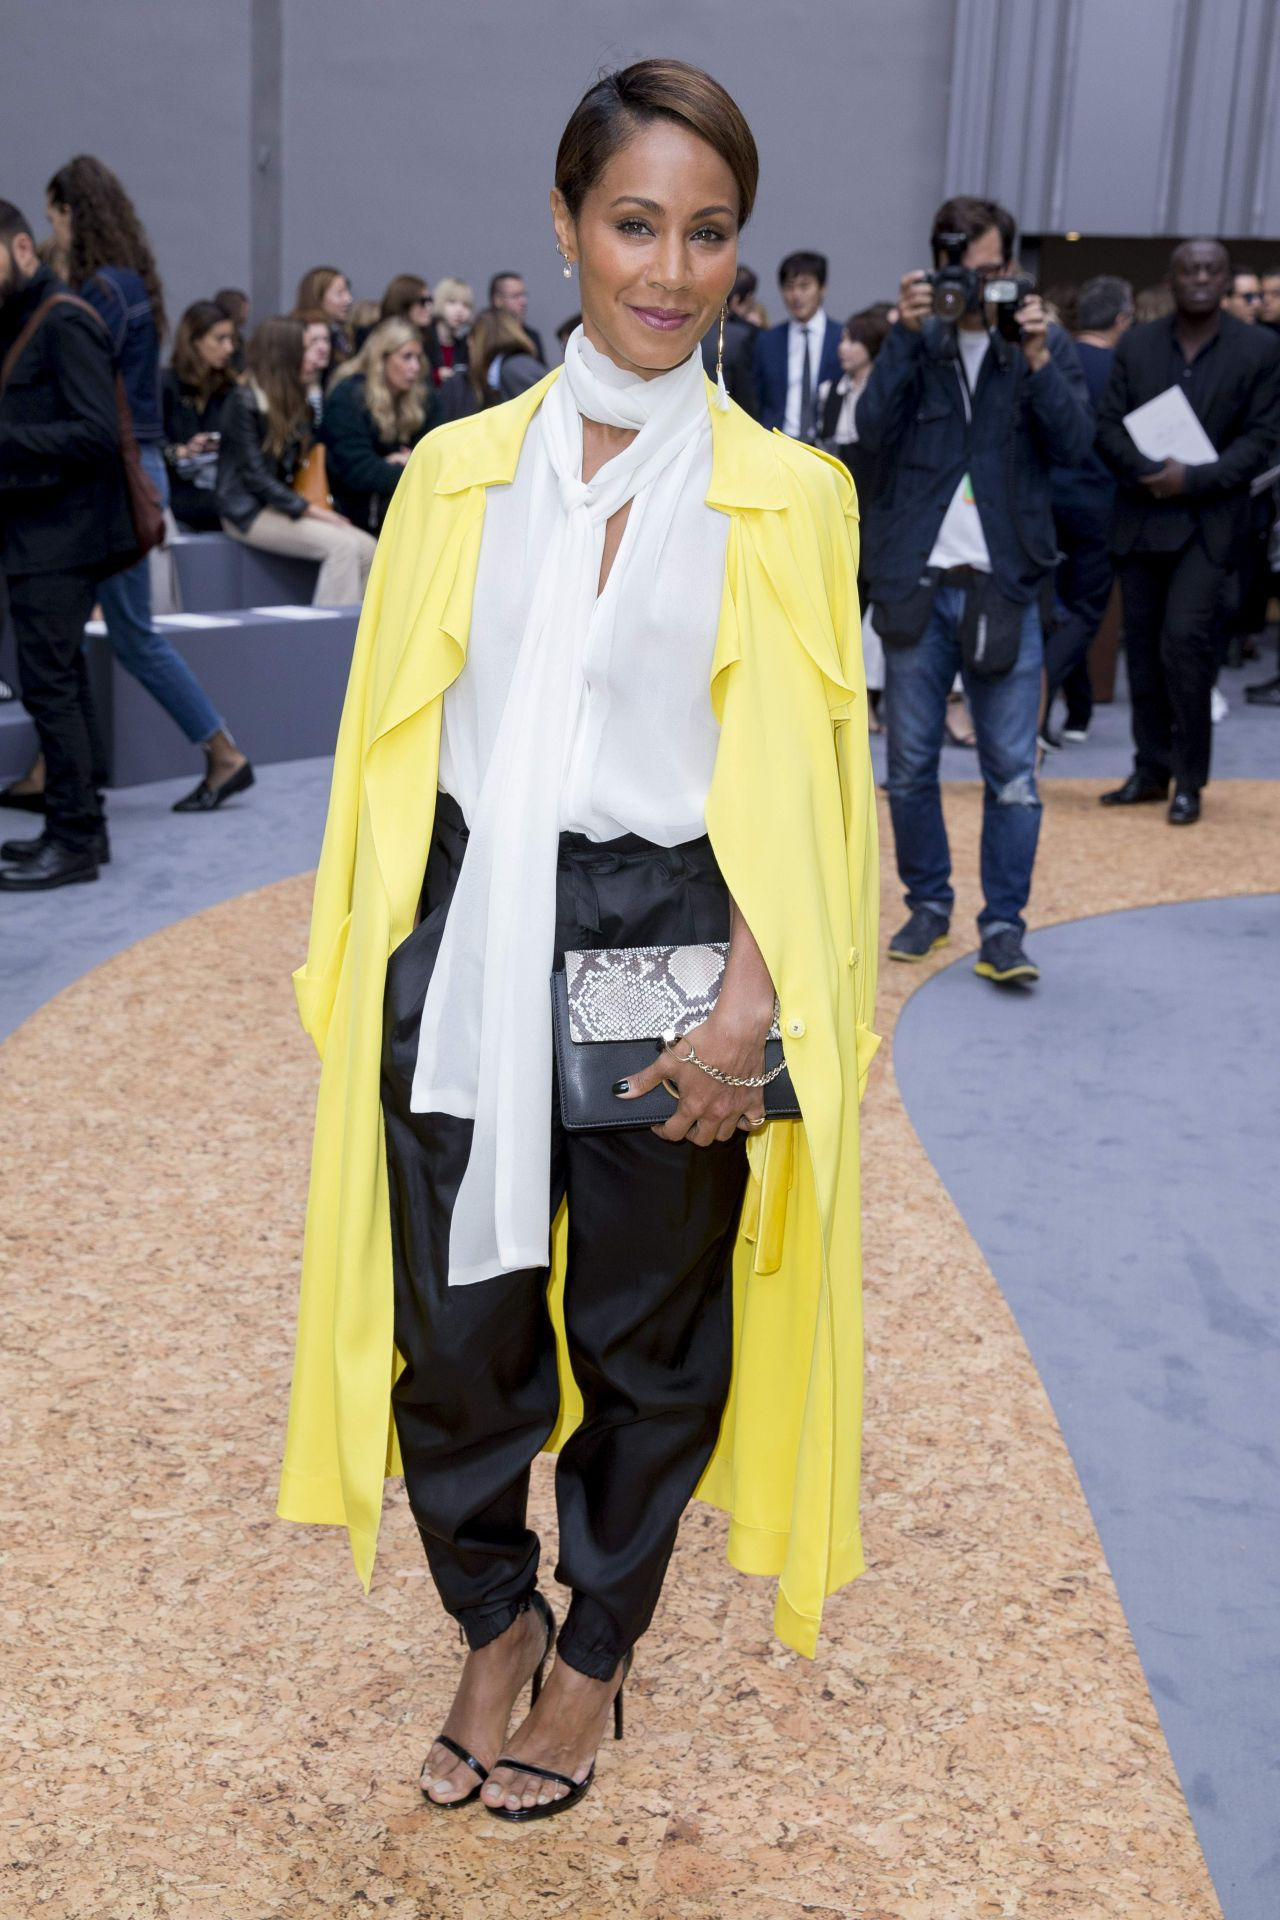 jada-pinkett-smith-at-the-chloé-fashion-show-october-2015_4